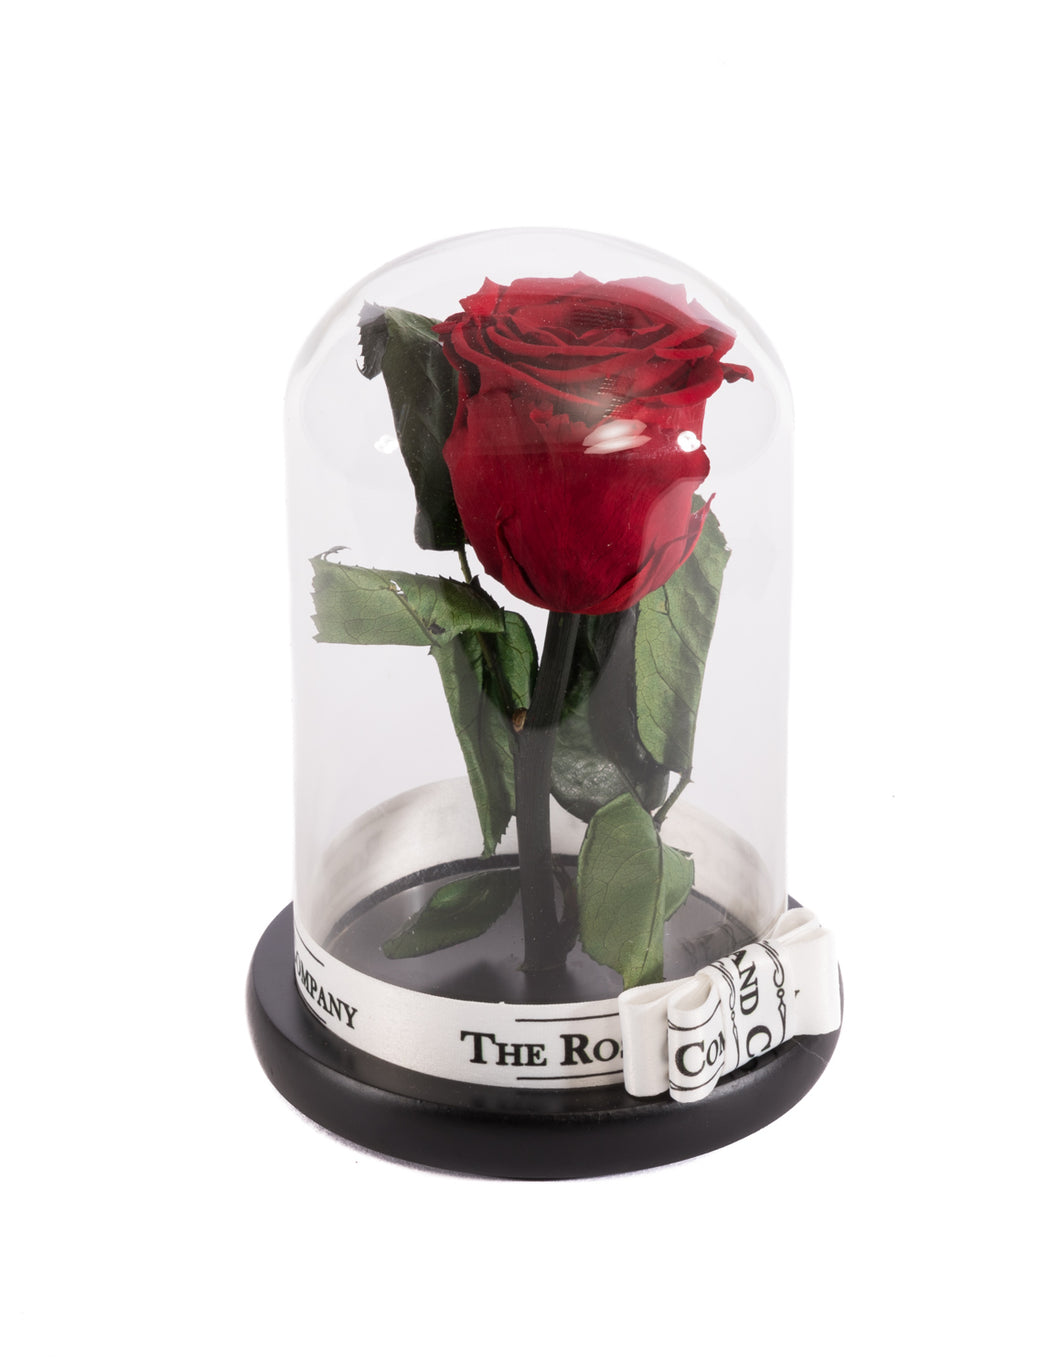 As seen in Beauty and the Beast: RED Eternity Rose, Under the Dome